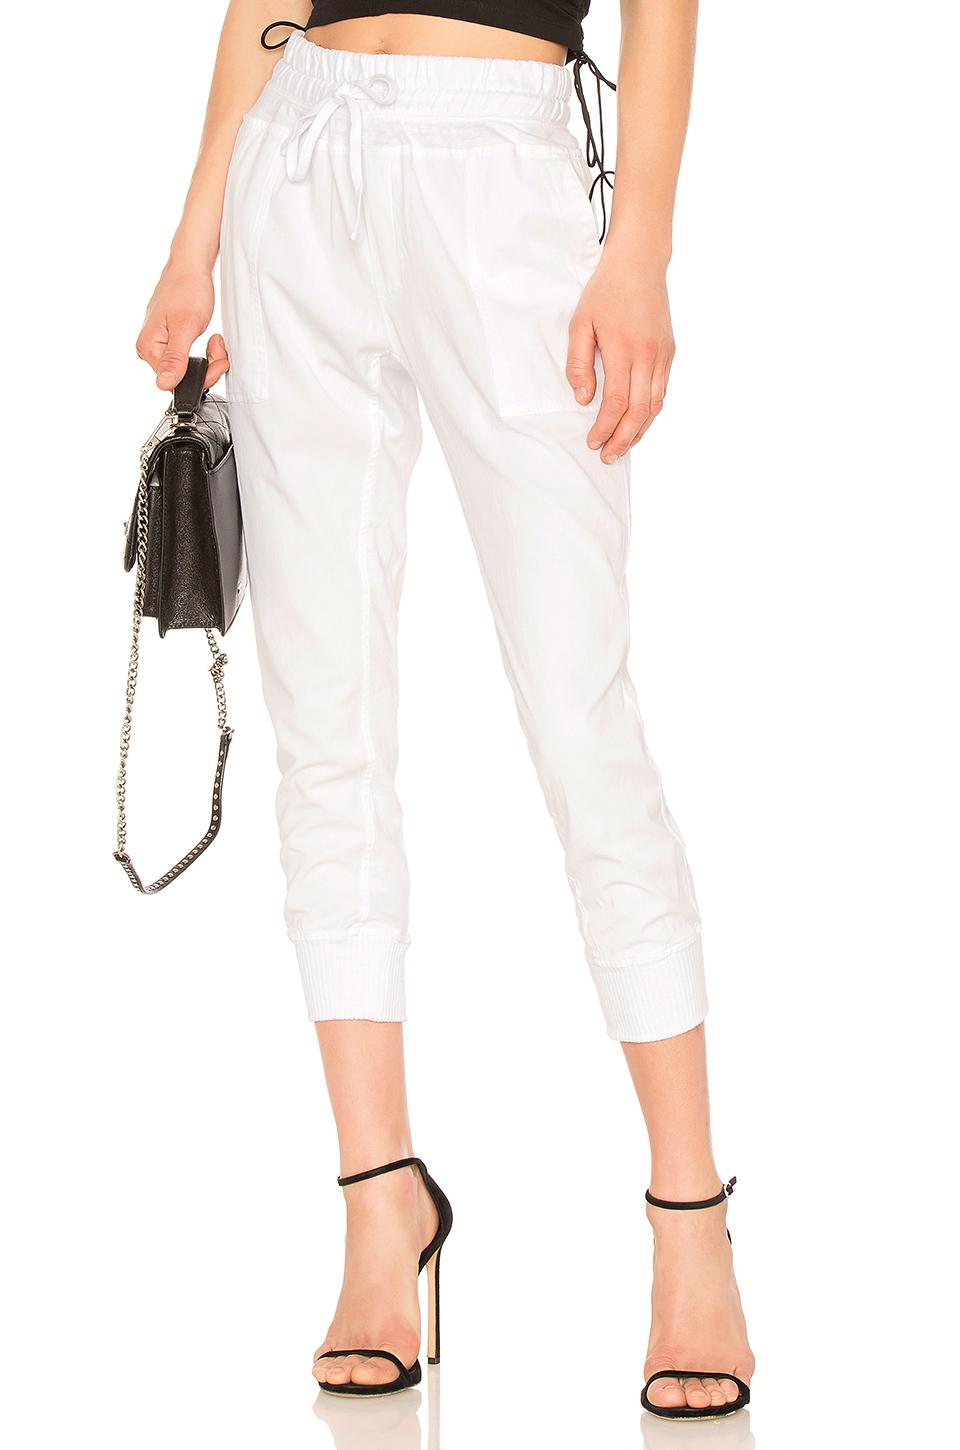 James Perse Contrast Cotton Pant In White